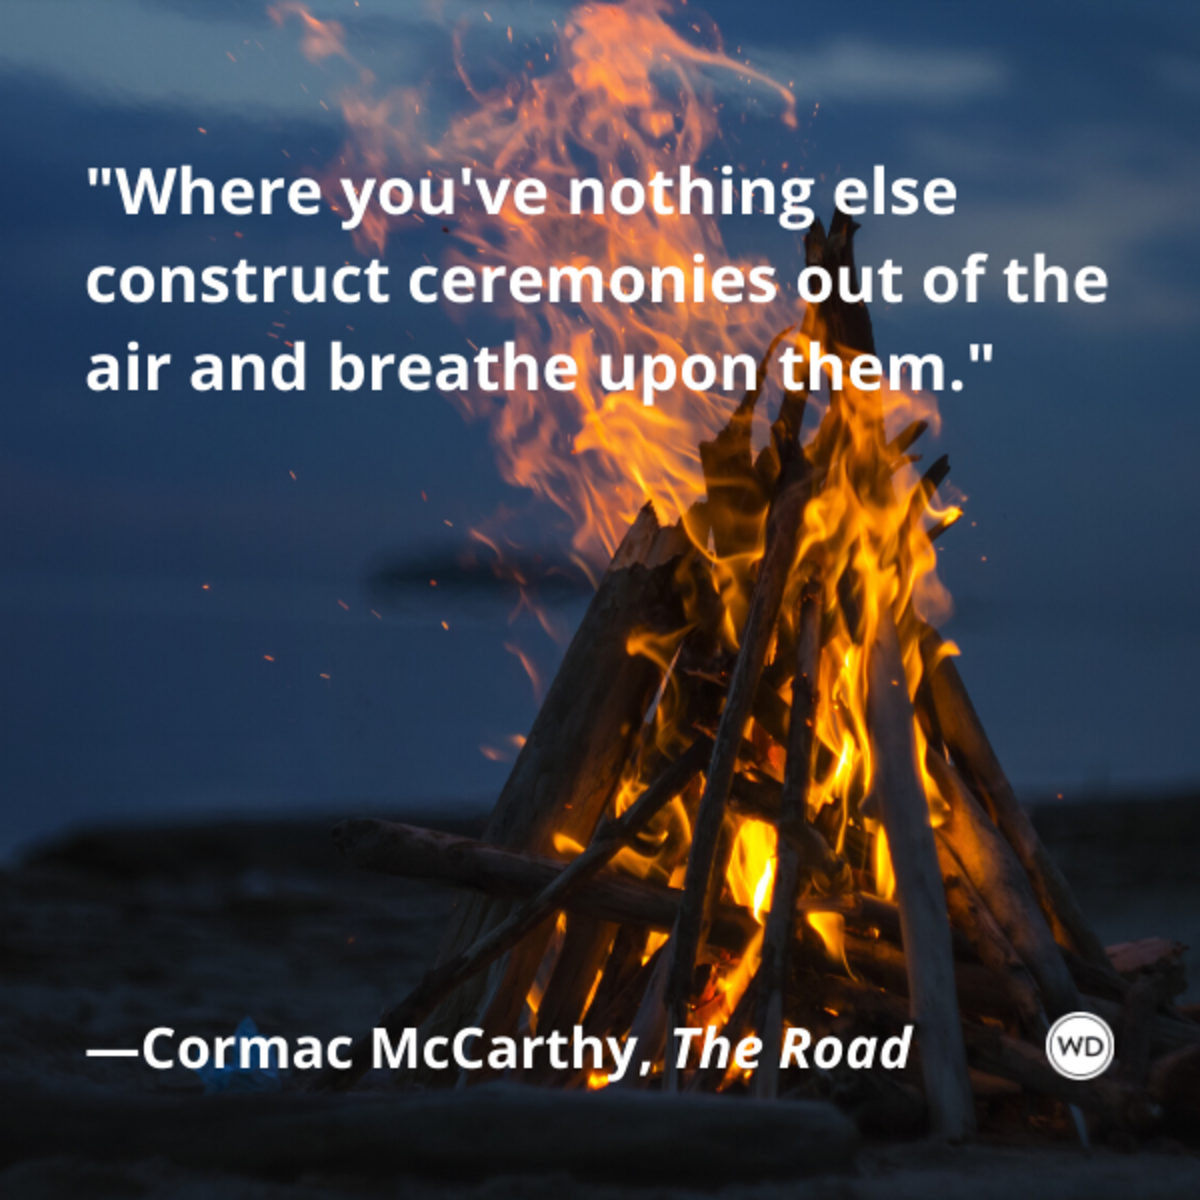 cormac_mccarthy_the_road_quotes_where_youve_nothing_else_construct_ceremonies_out_of_the_air_and_breathe_upon_them